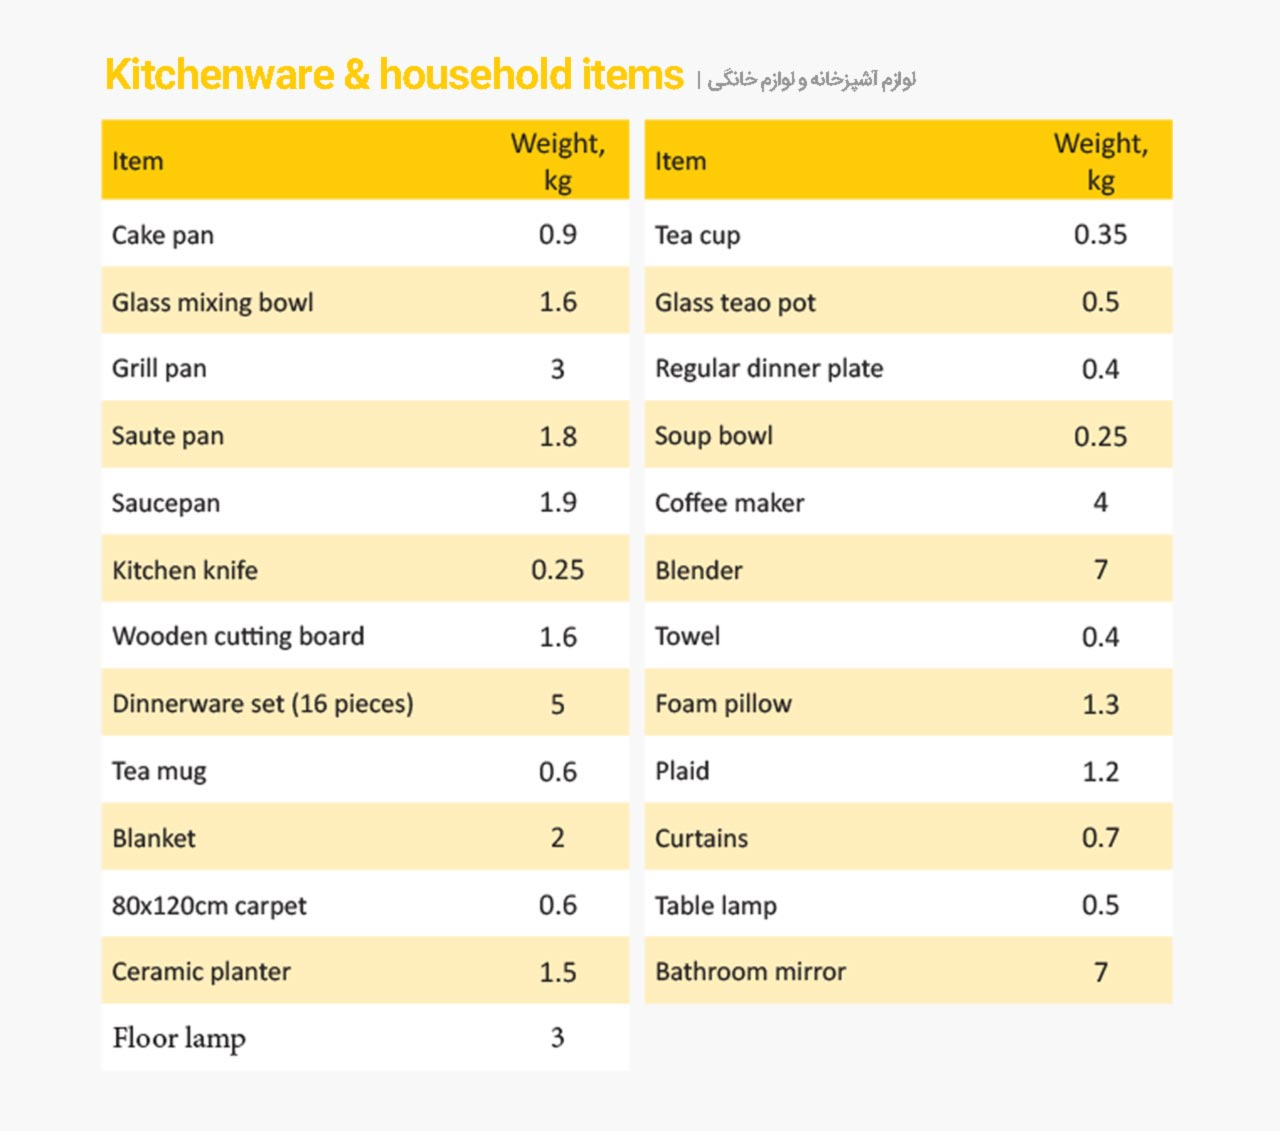 Kitchenware-&-household-items